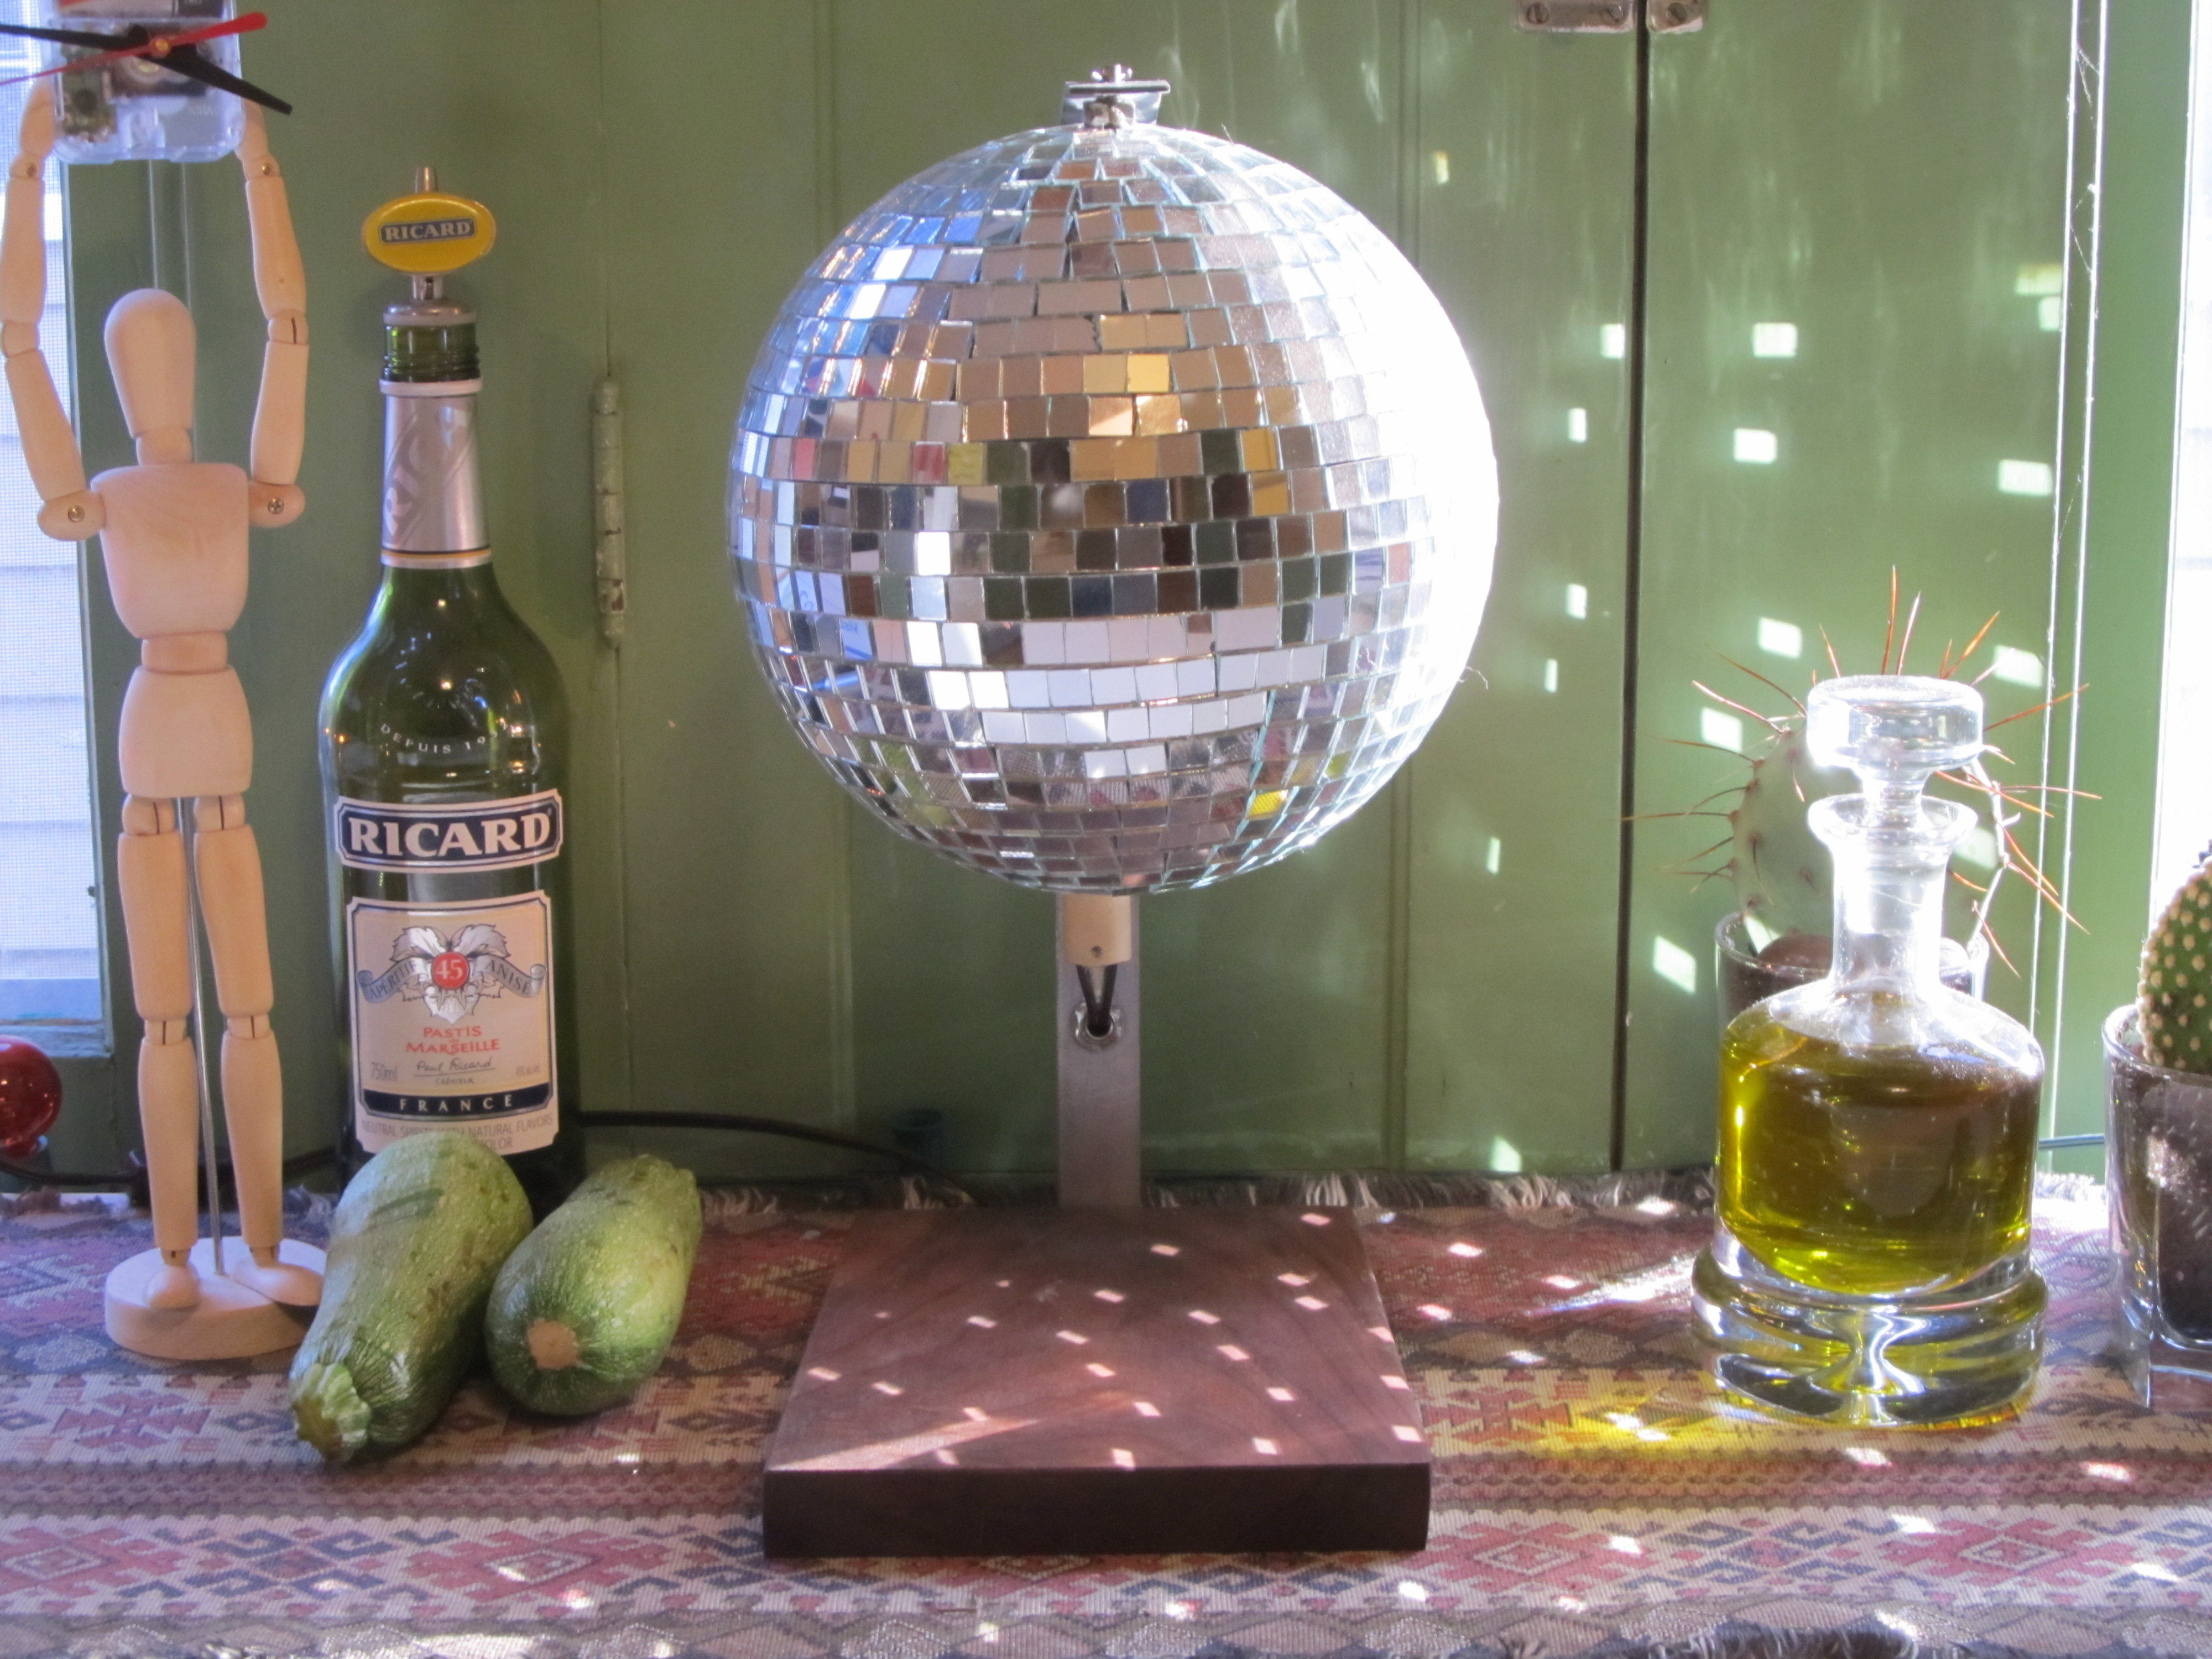 http://www.etsy.com/listing/93174280/recycled-disco-ball-lamp